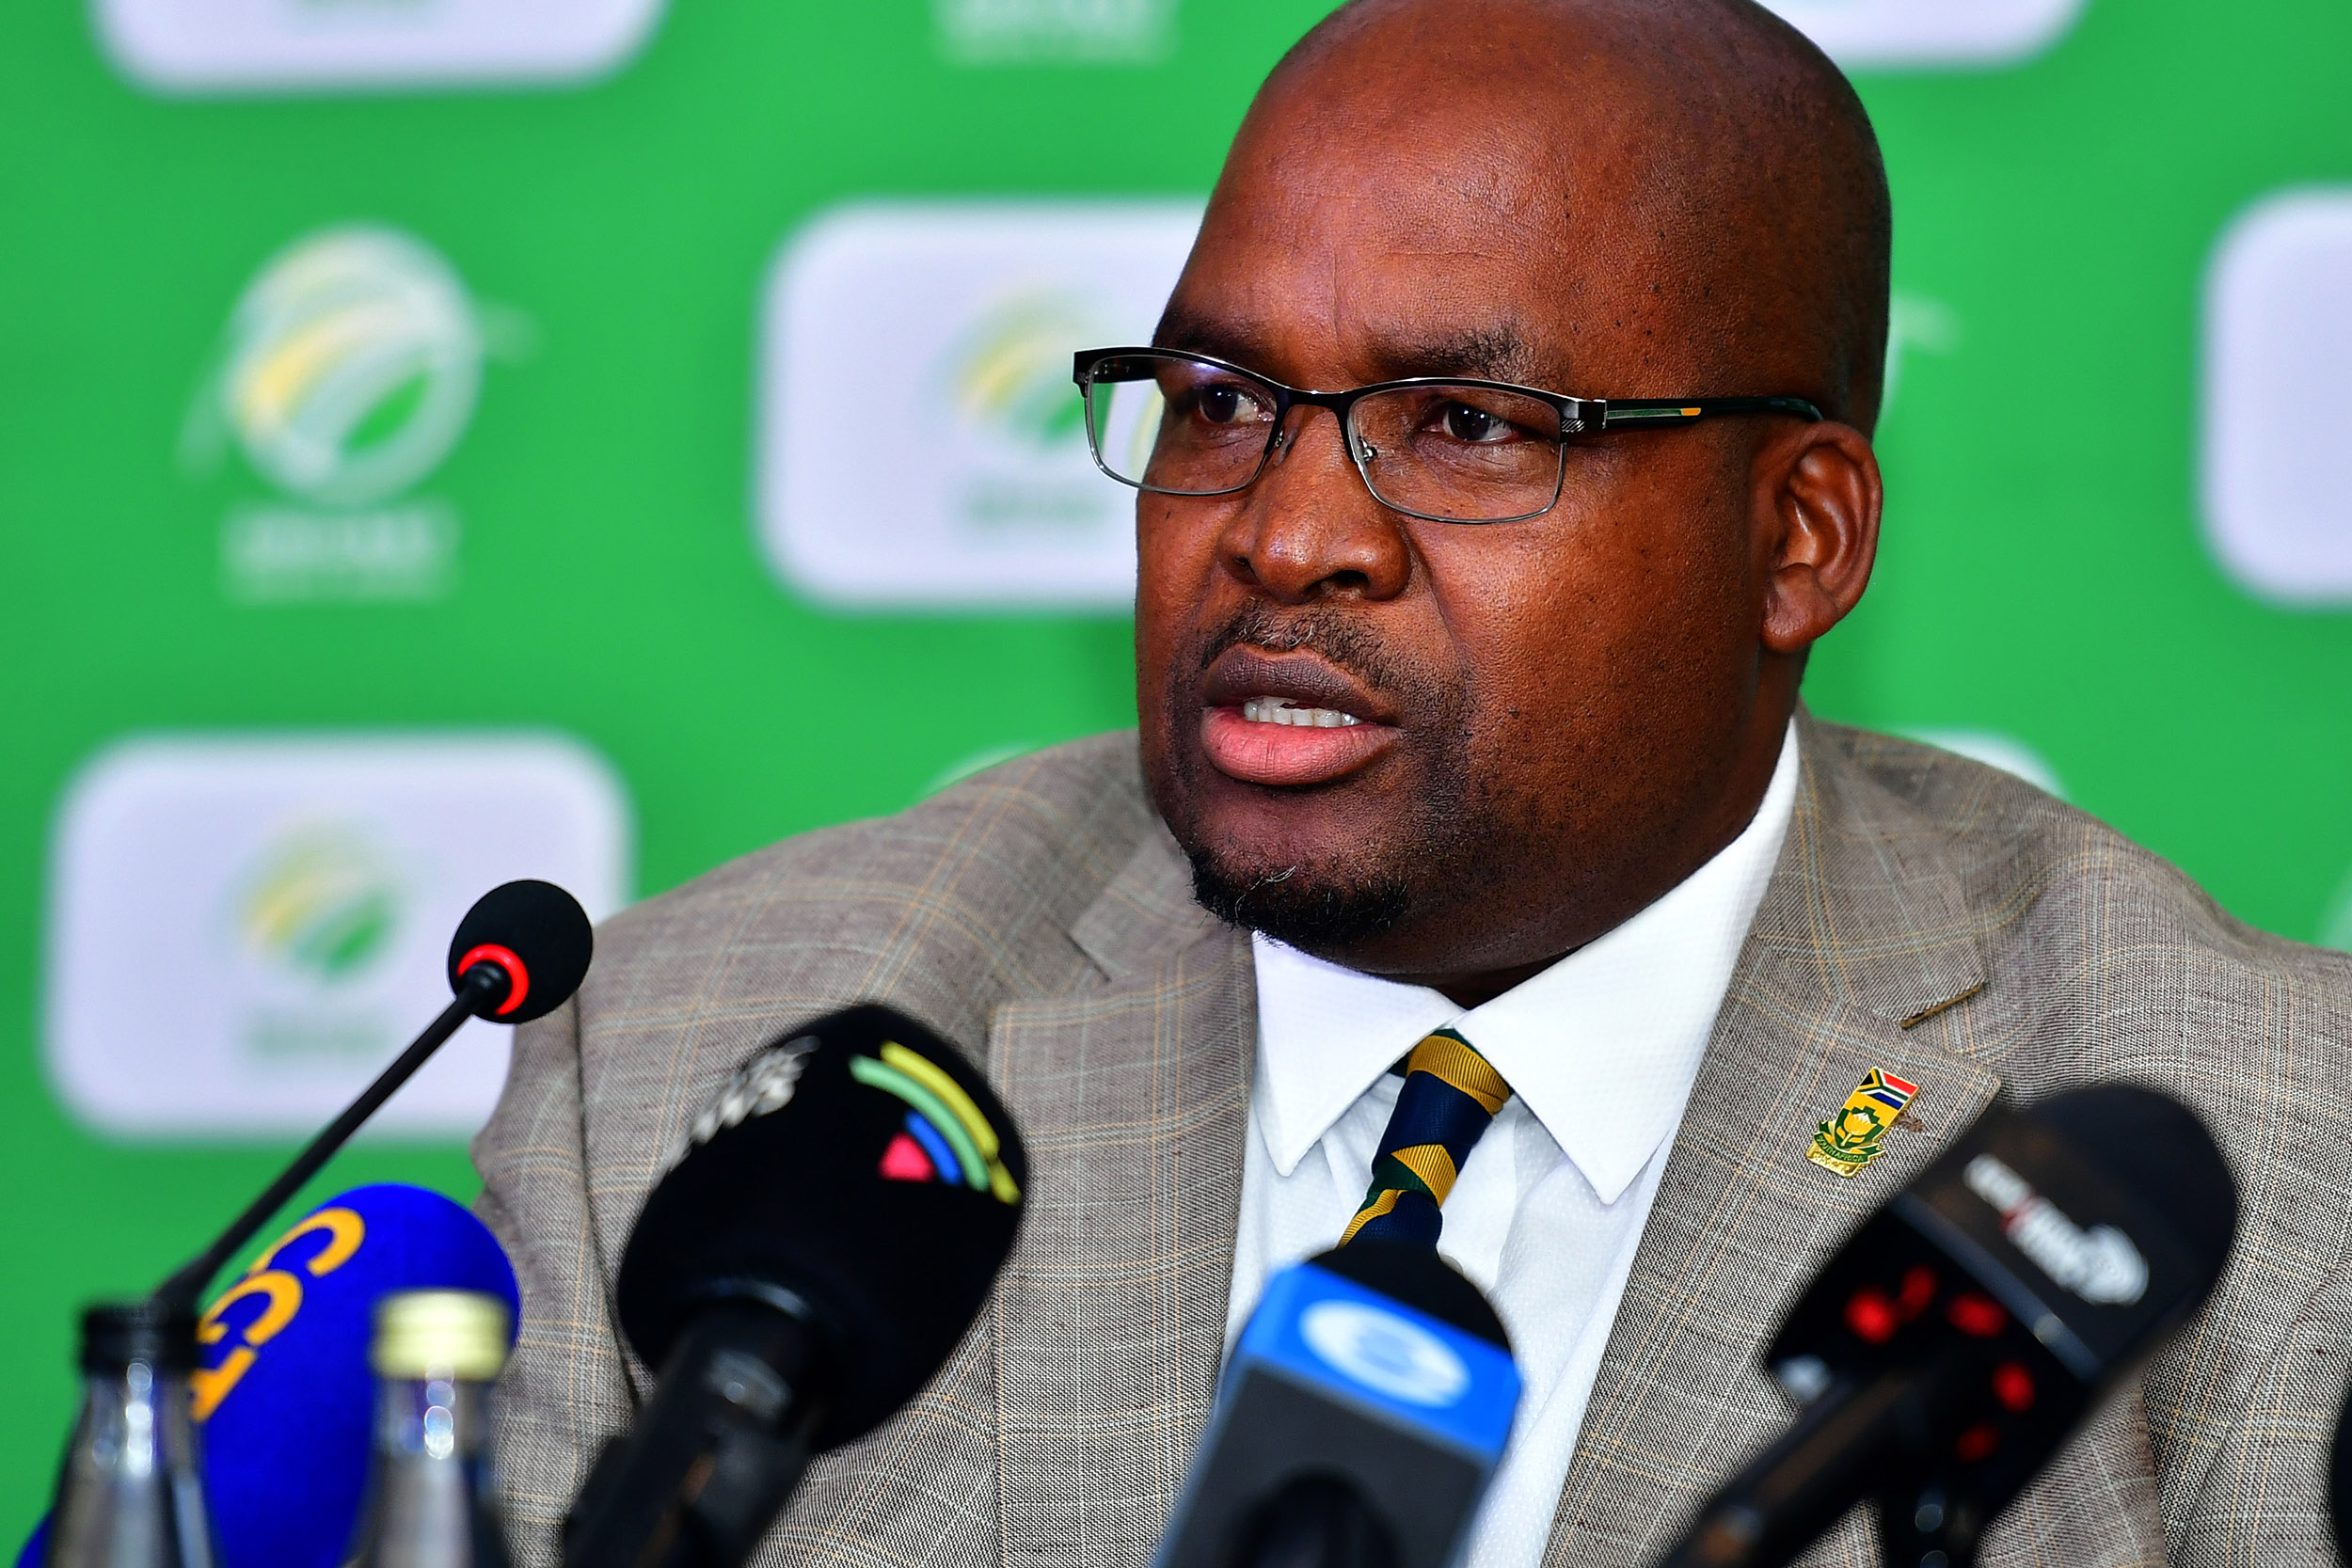 7 December 2019: Long-serving Cricket South Africa president Chris Nenzani is stubbornly staying put, despite calls for a new board from the public and private sectors. (Photograph by Johan Rynners/Gallo Images)